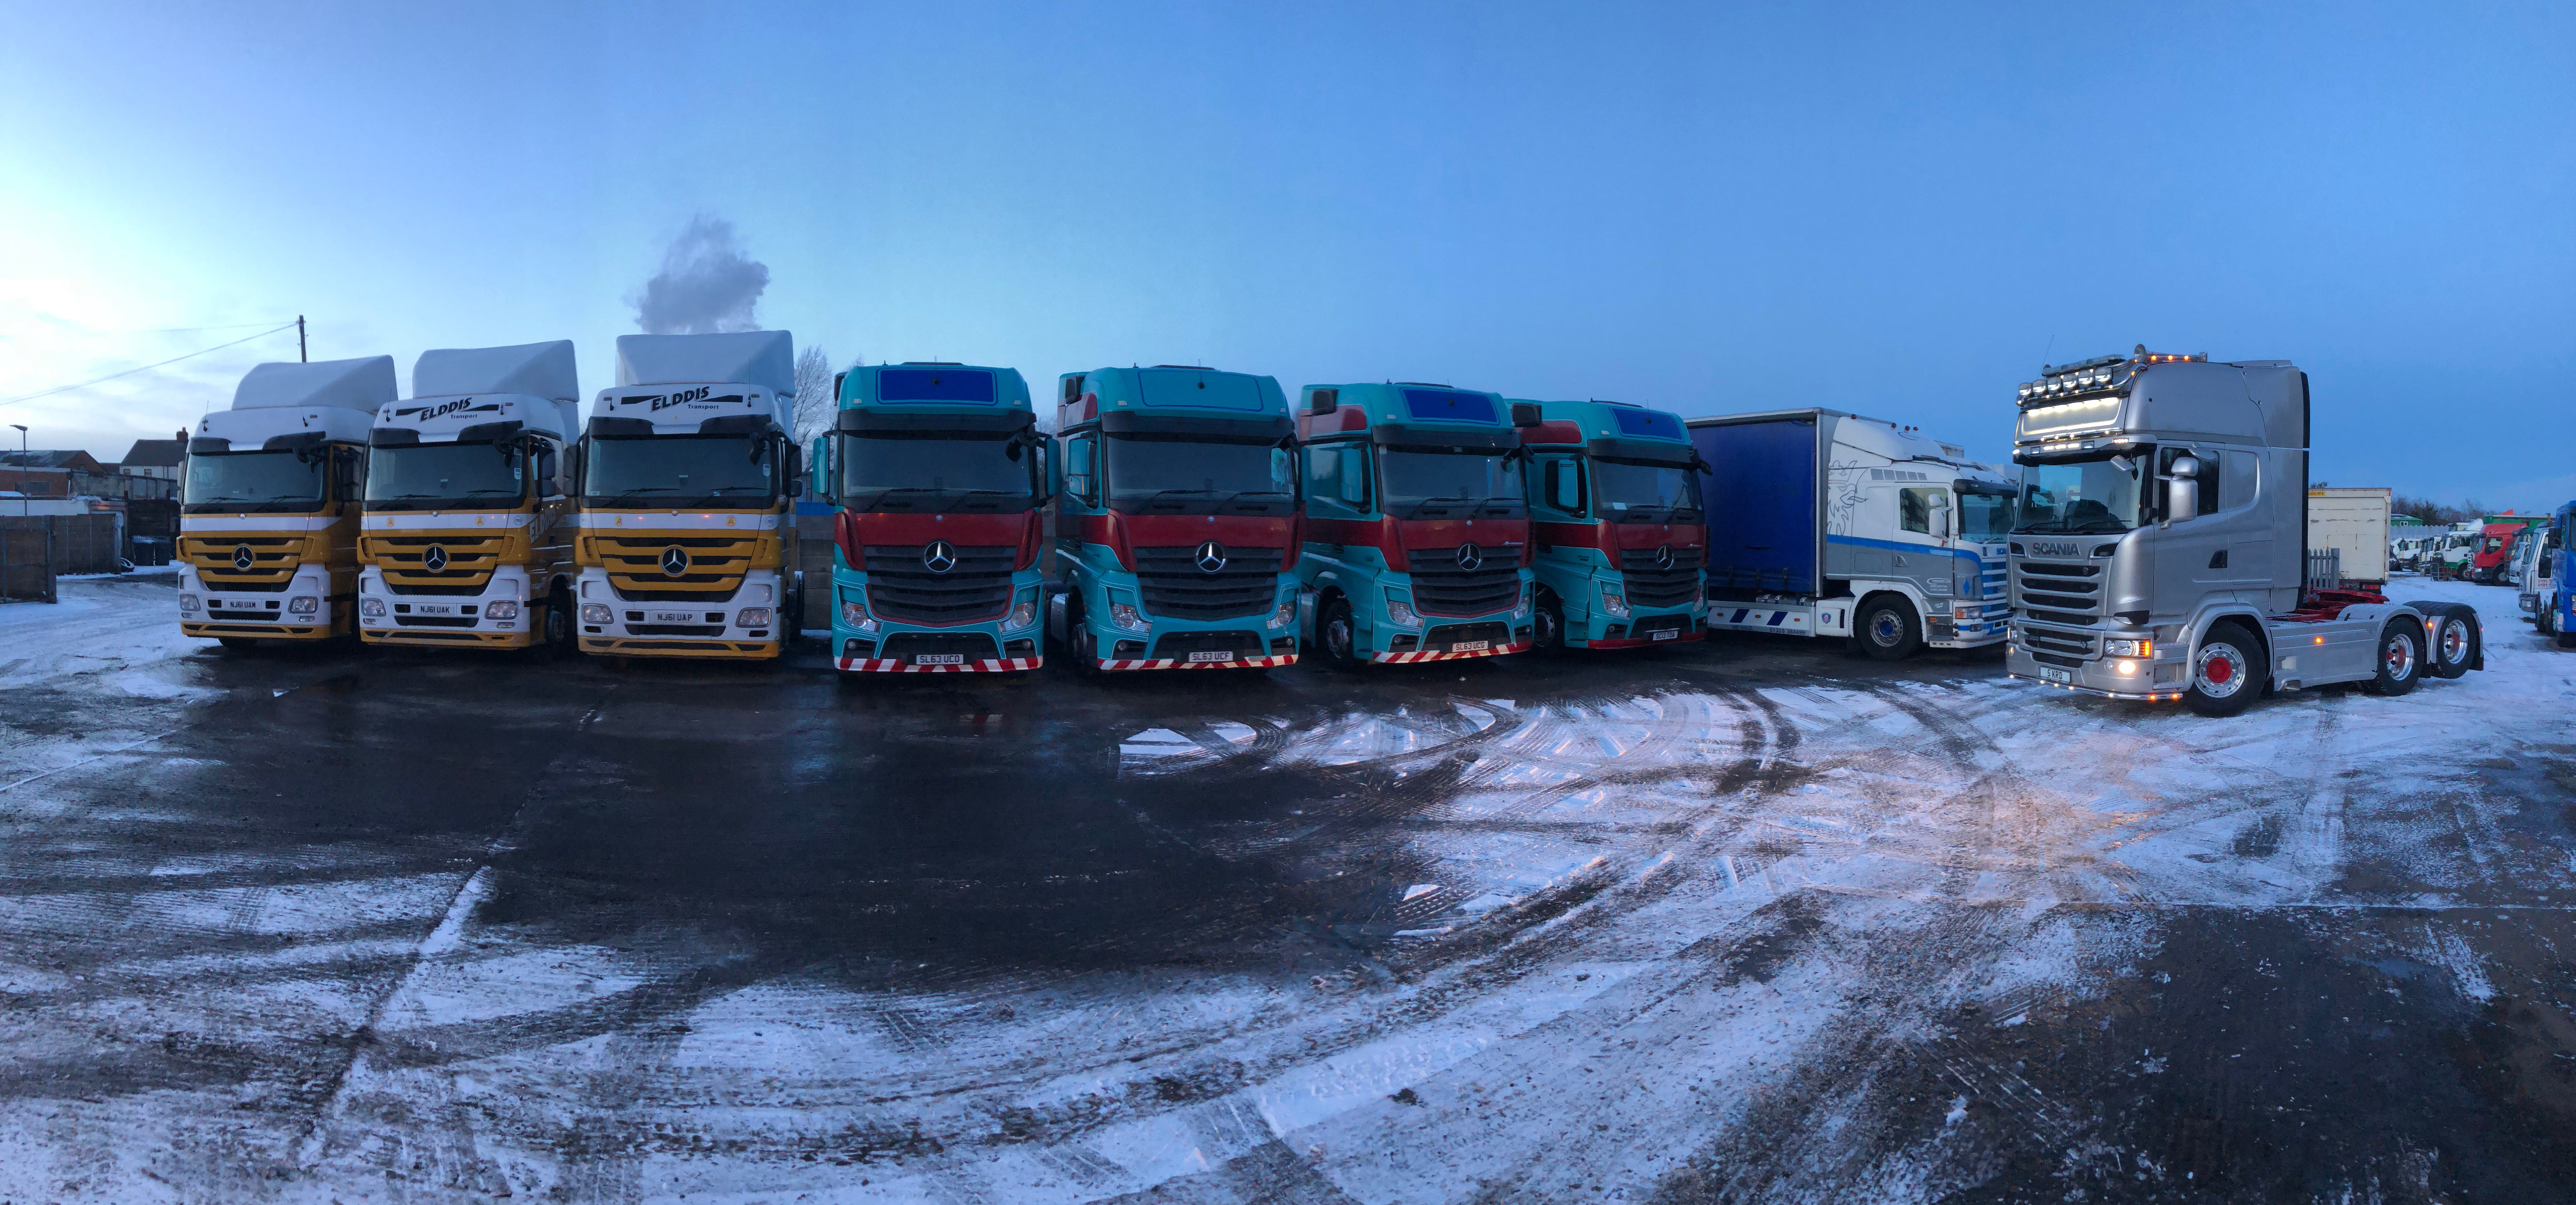 Used Trucks For Sale Export Dixon Commercial Exports North East England Uk